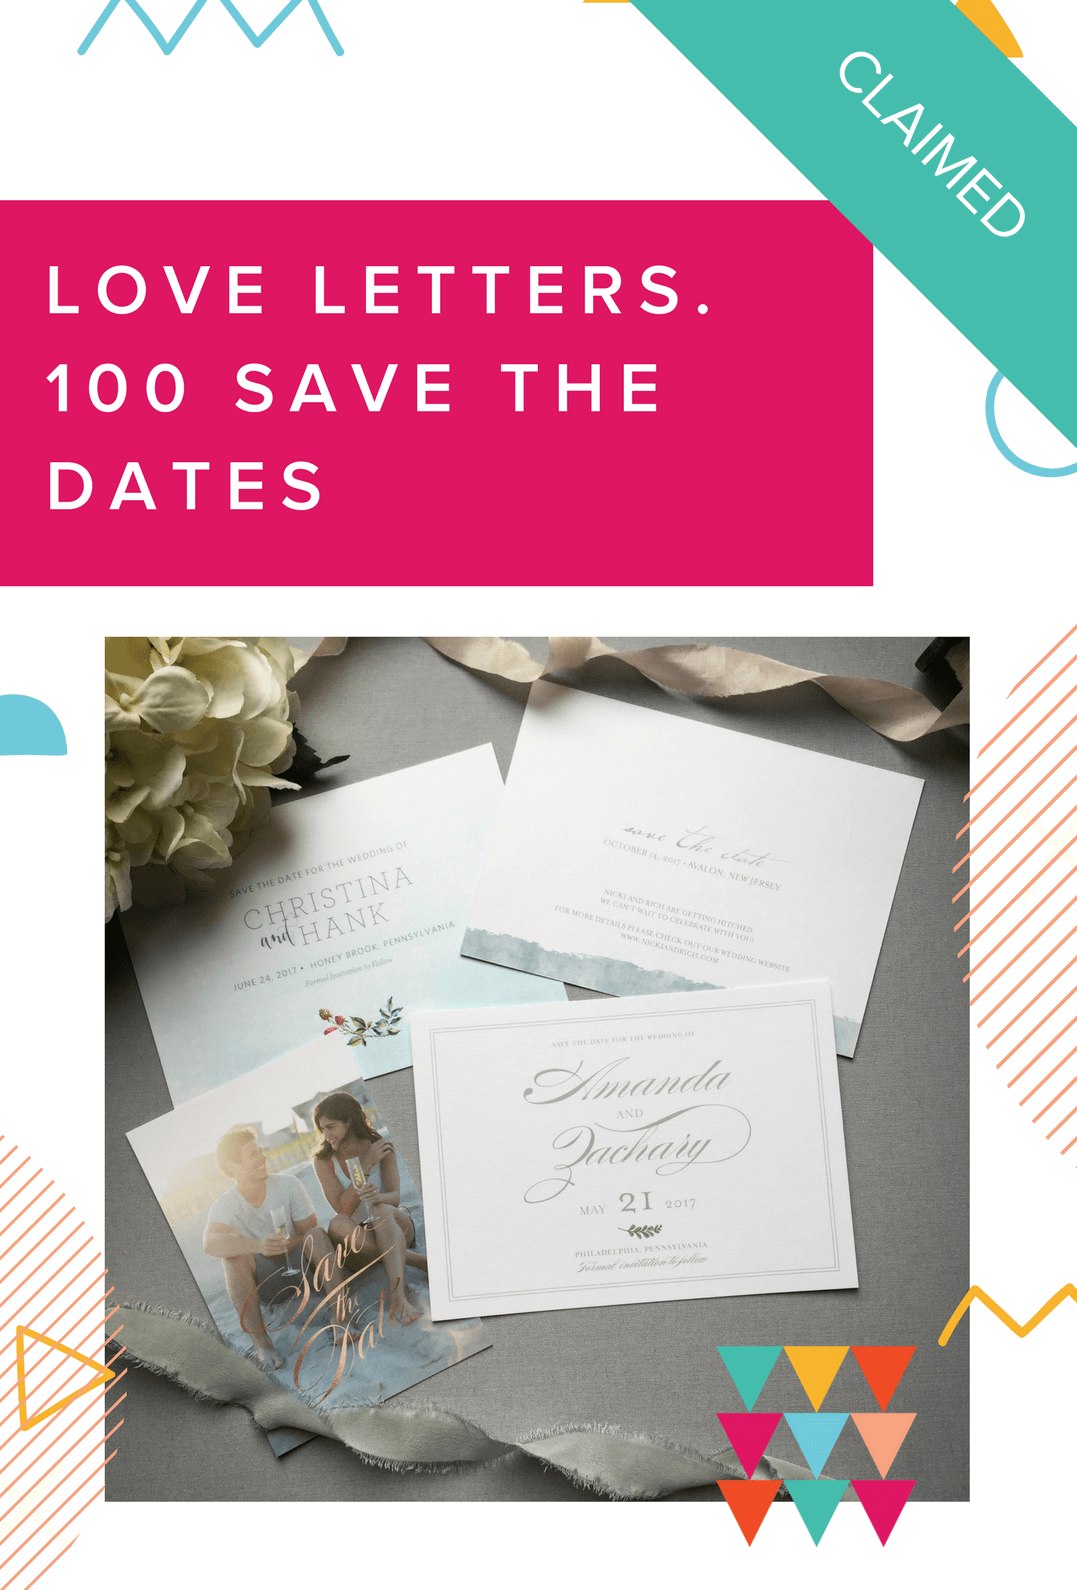 Papertree Loveletters 100 save the dates - claimed